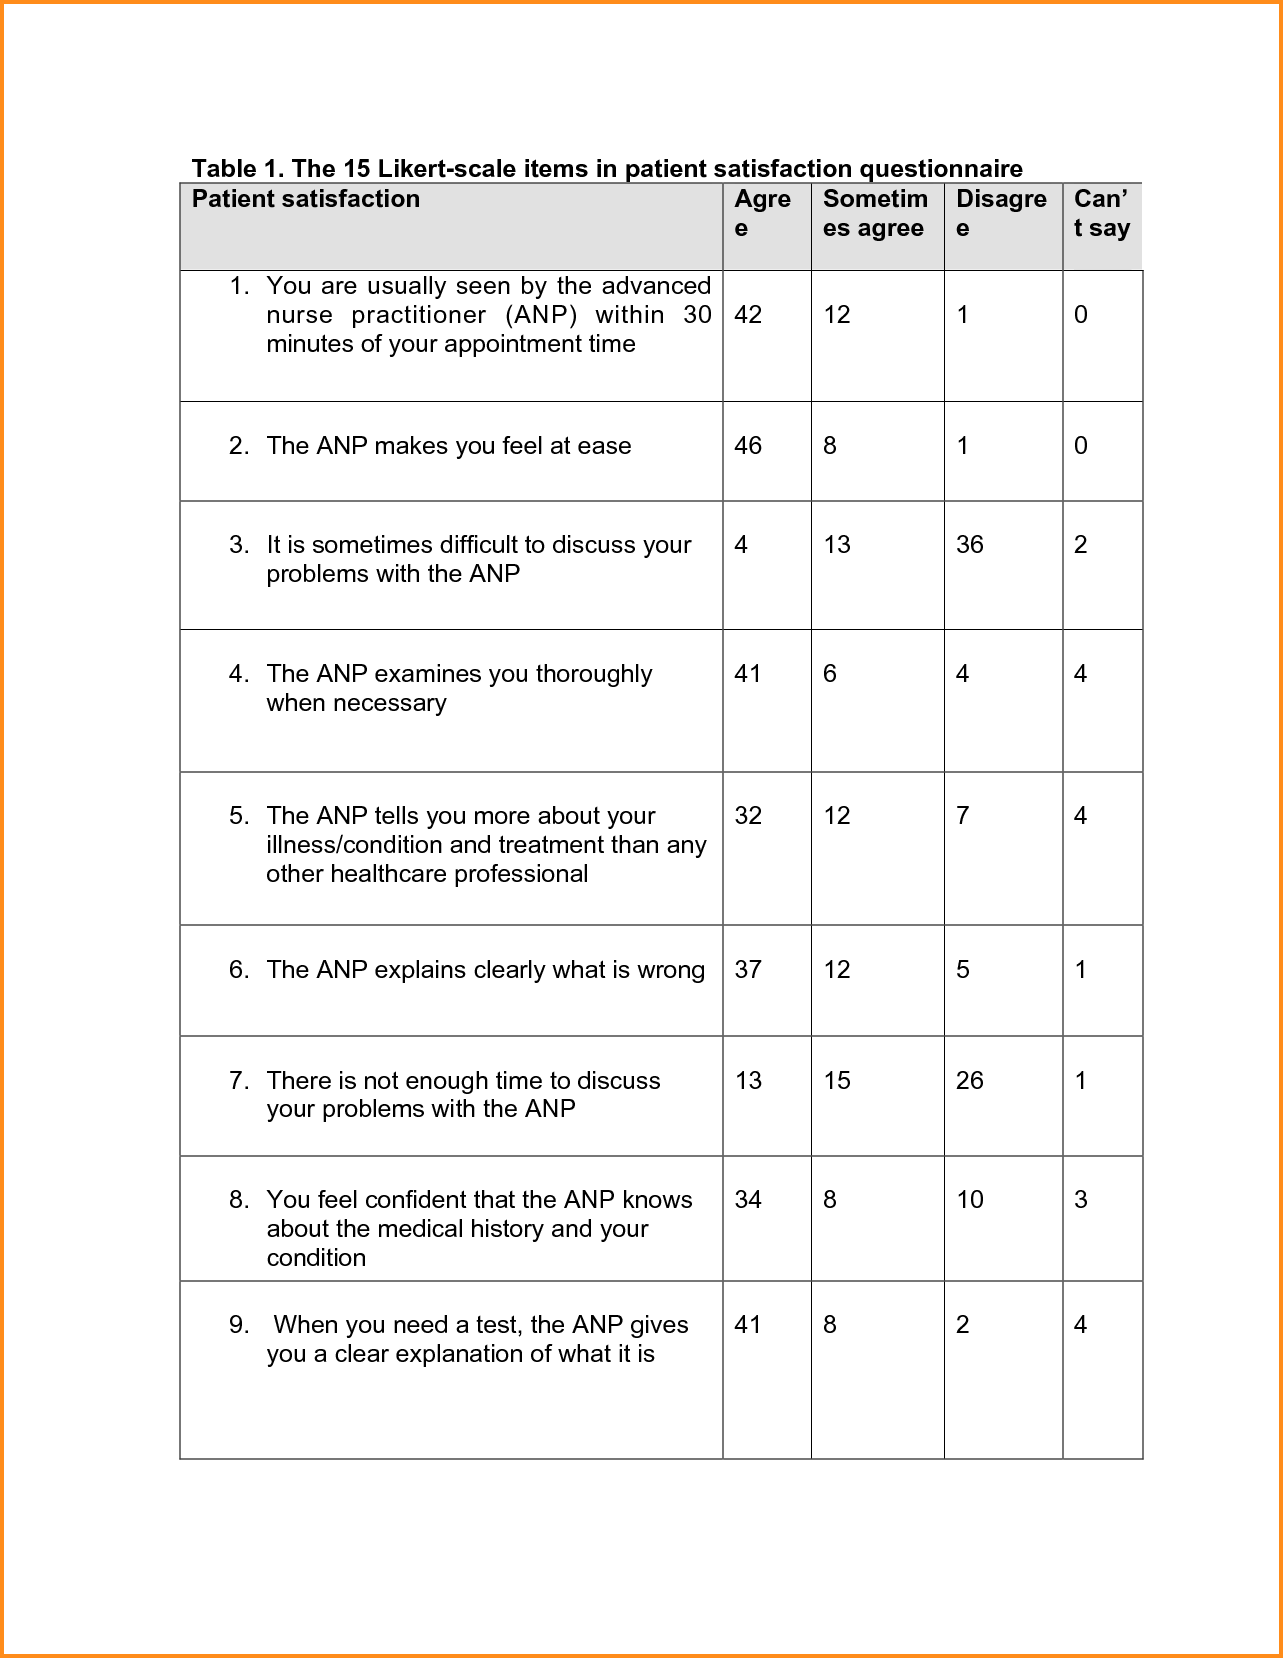 Likert Scale Template 30 Free Templates Examples Lab By Templatelab A Ratio Might Request That You Fill In Your Yearly